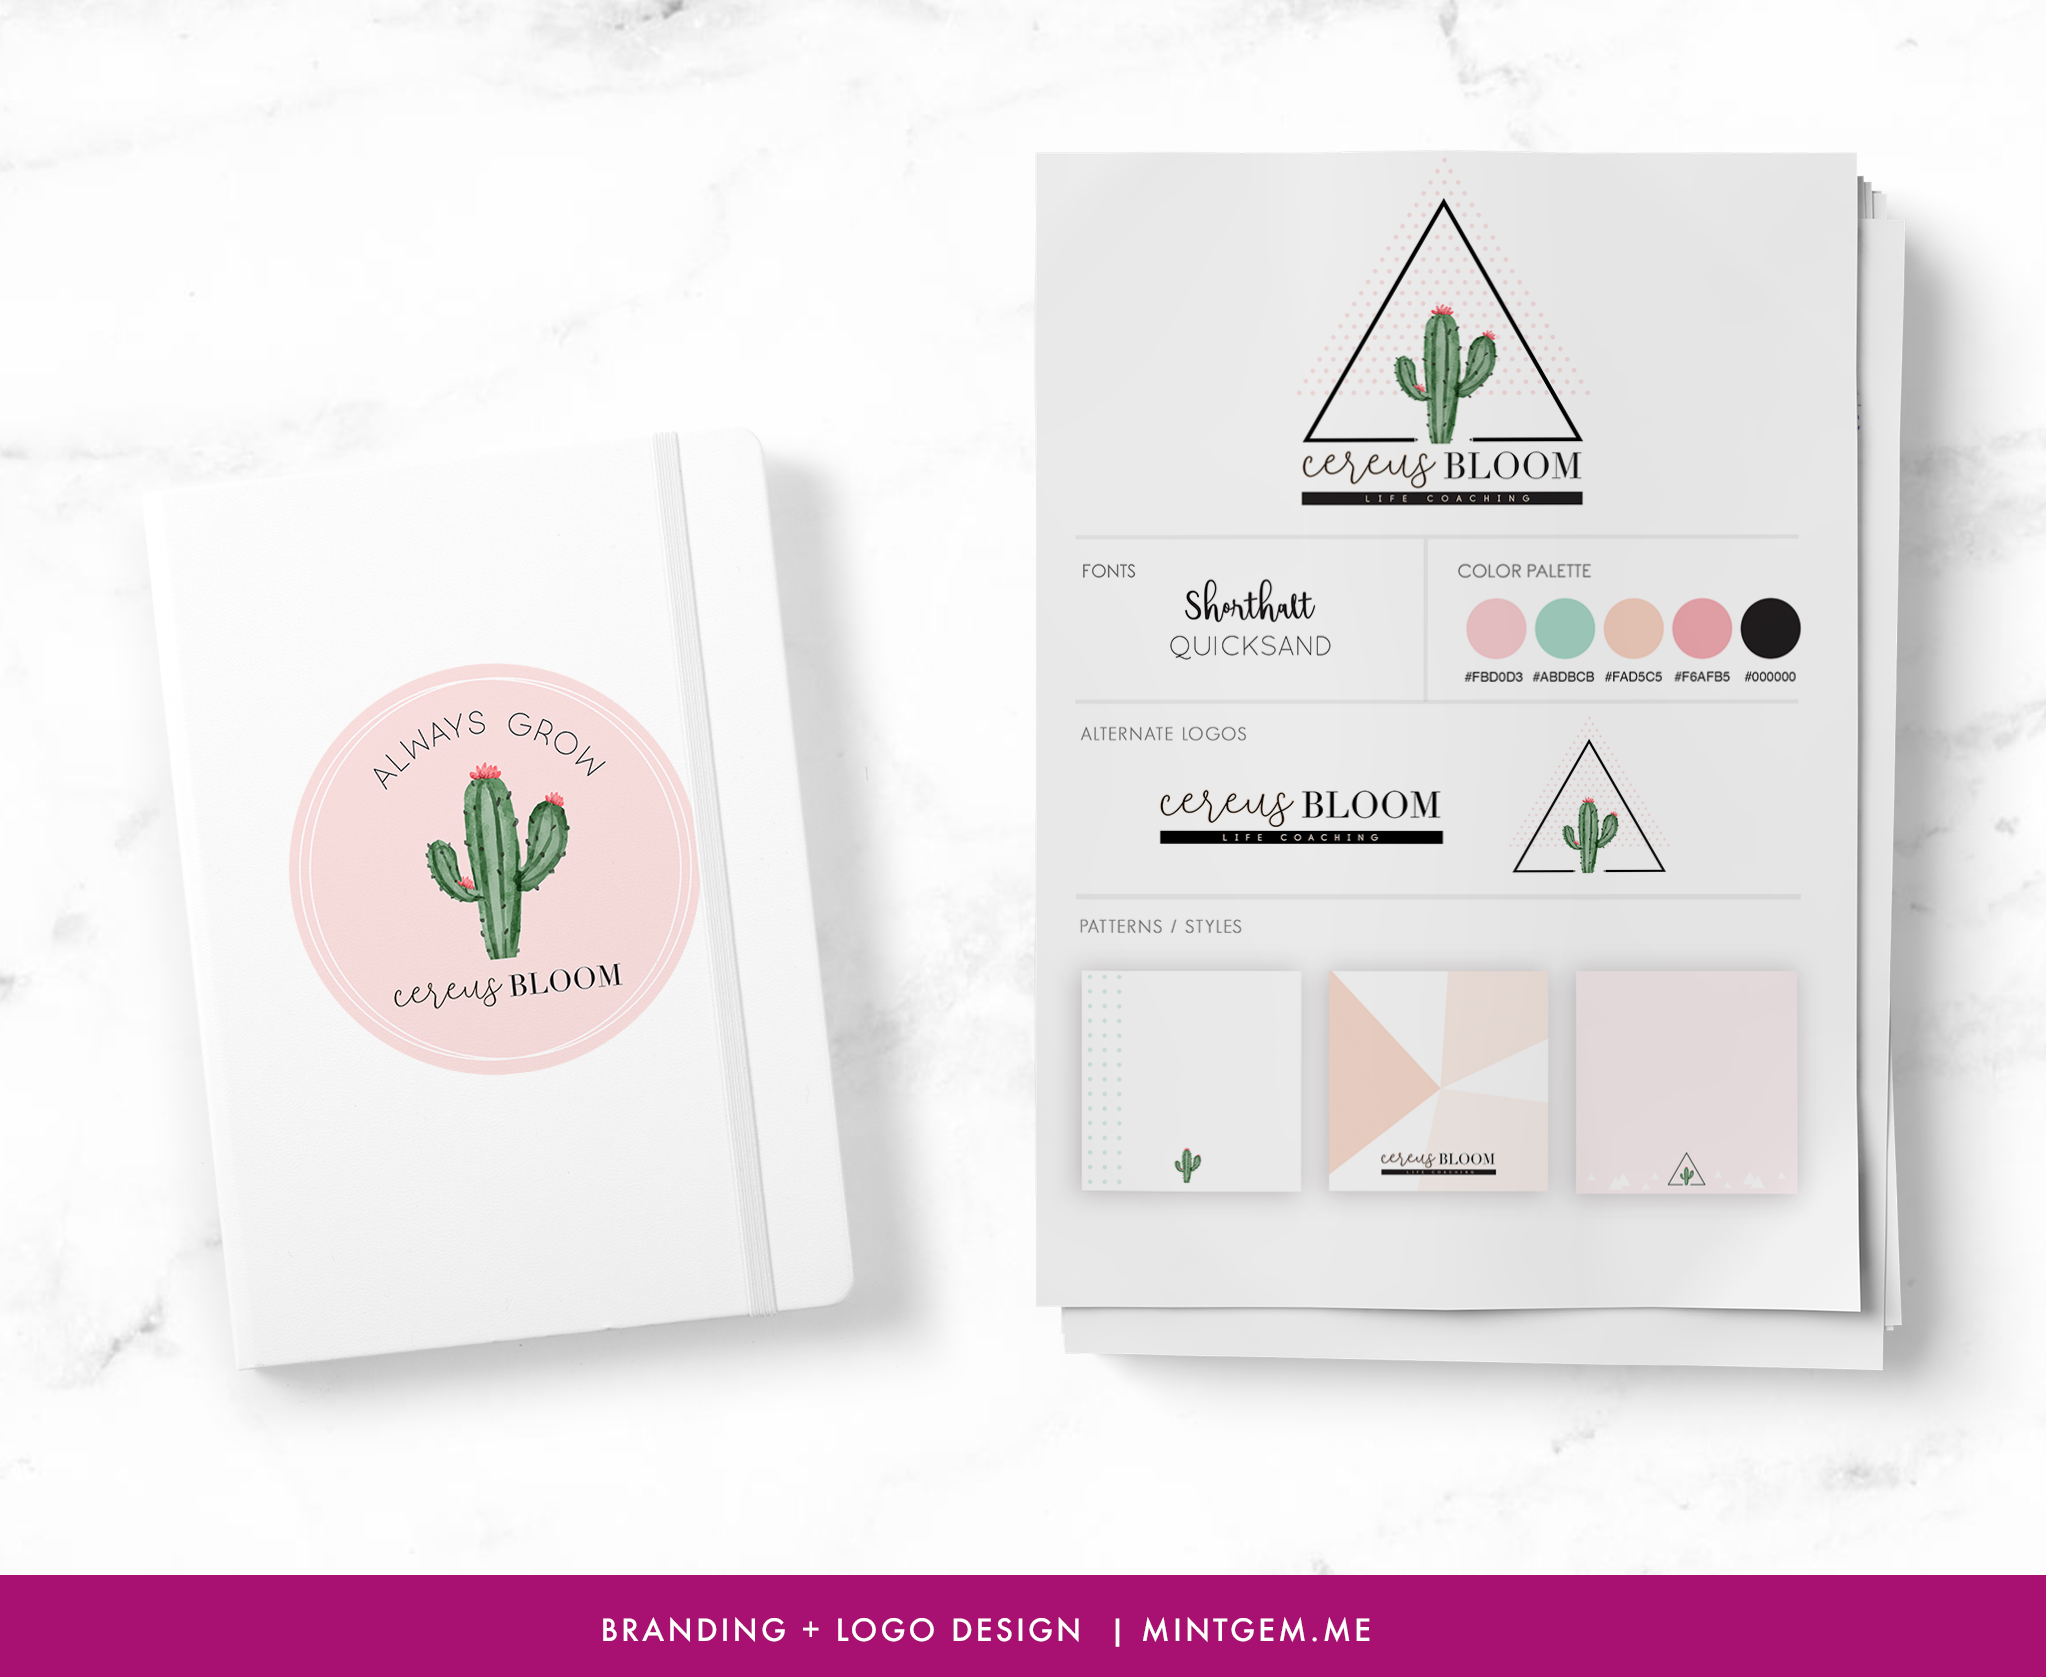 branding-mintgem-logo-design-for-SOULFUL-coaches-women-in-business-cereusbloom2.png